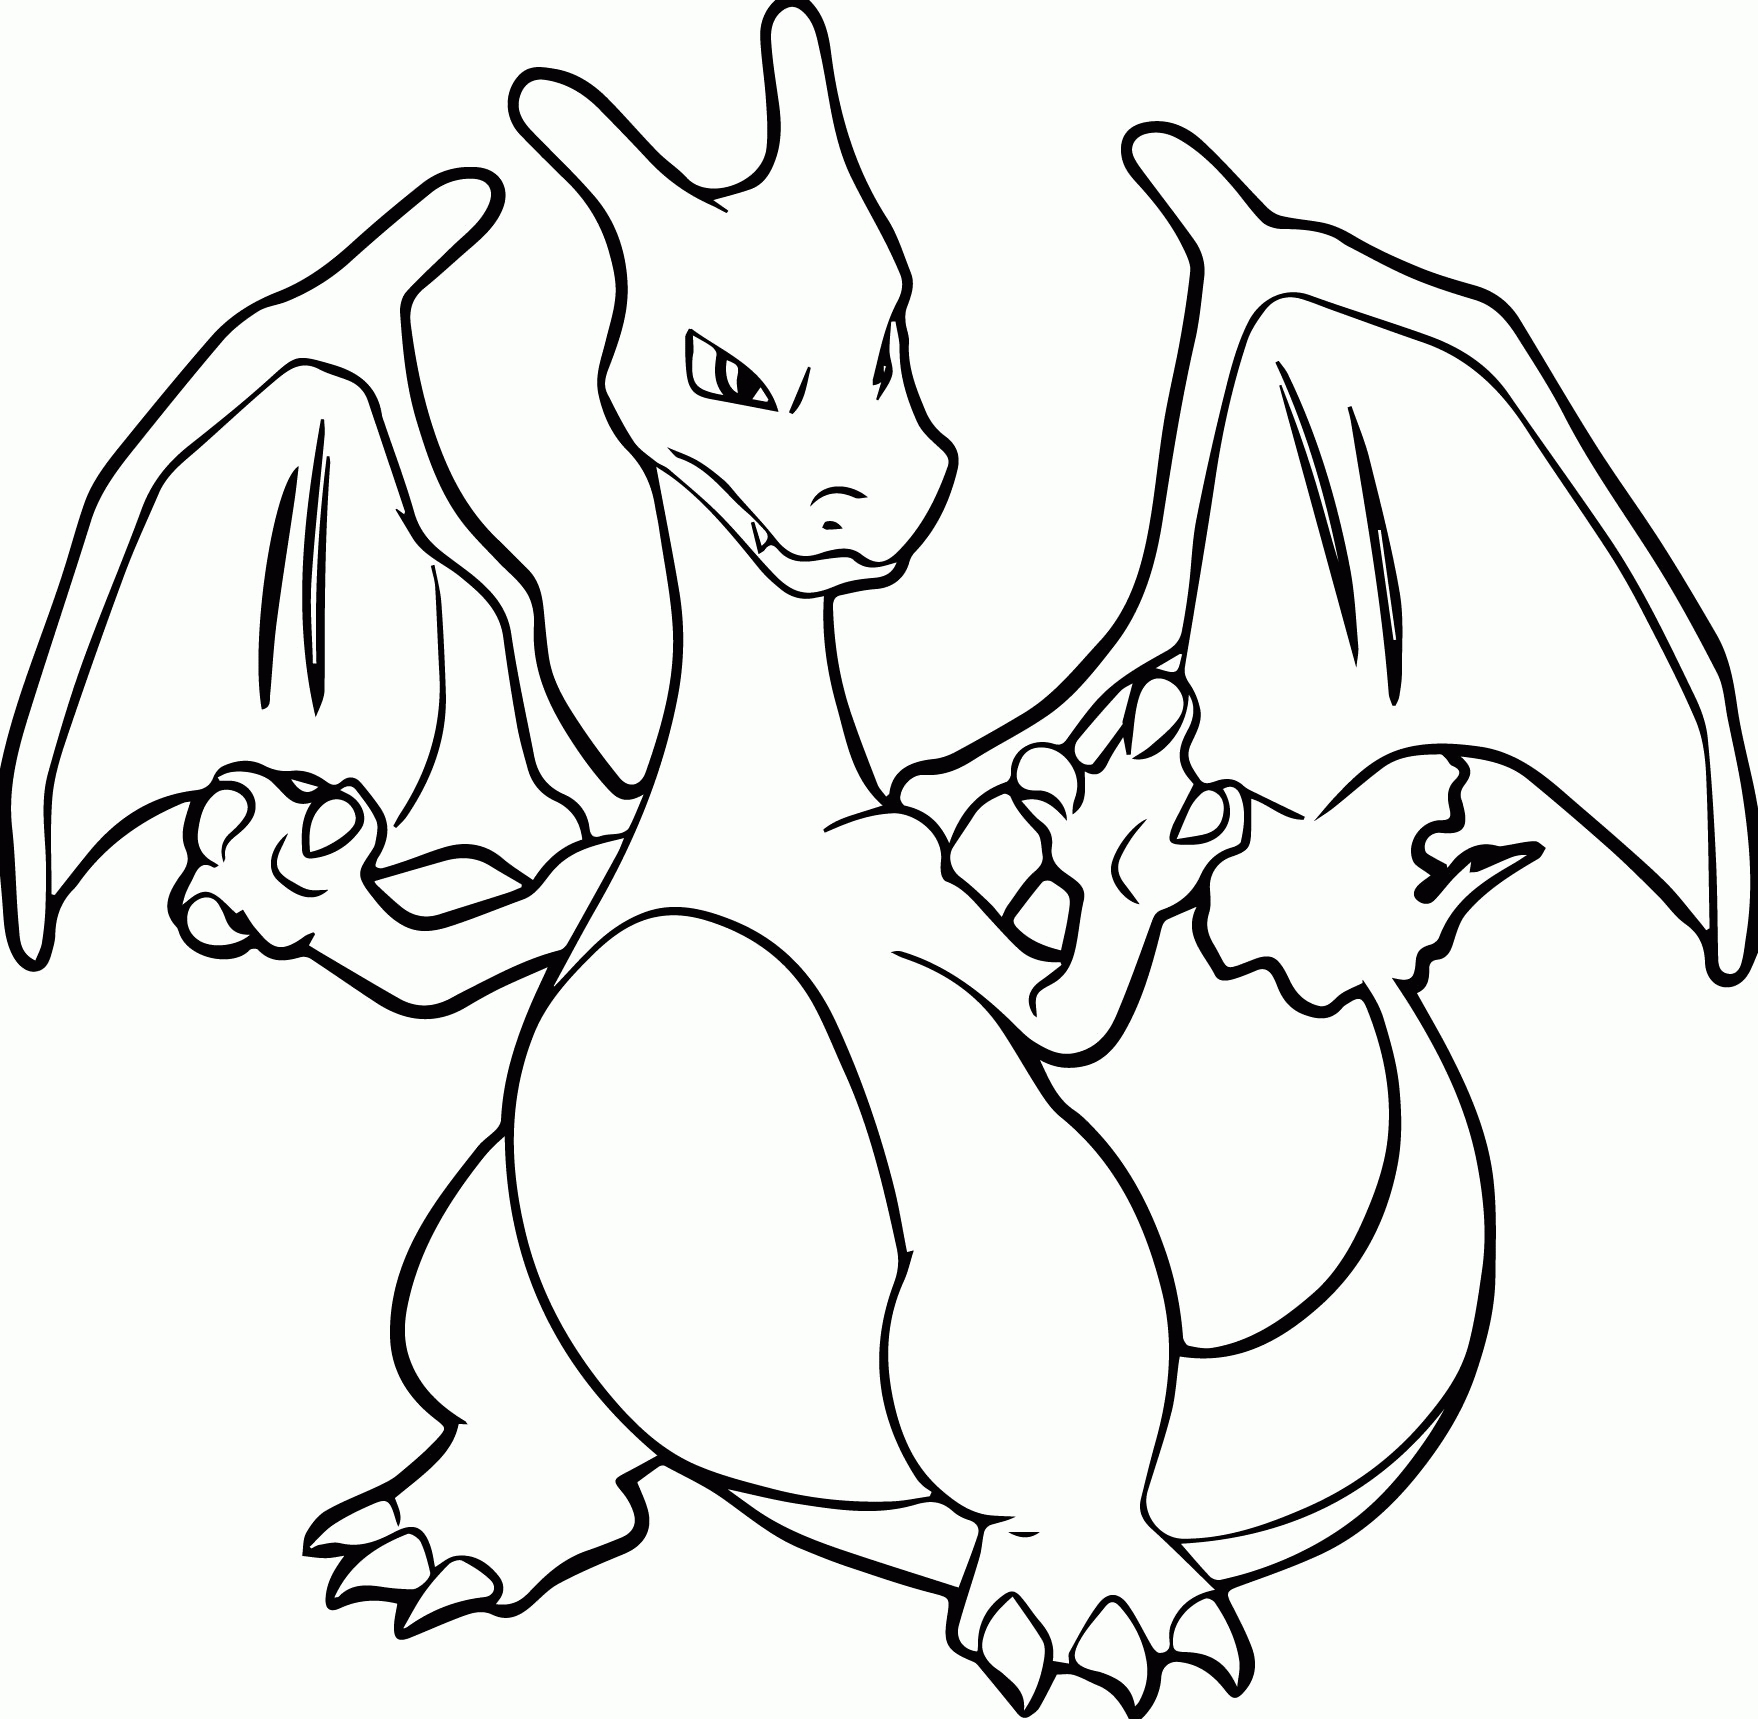 charizard coloring page - all pokemon charizard coloring page images